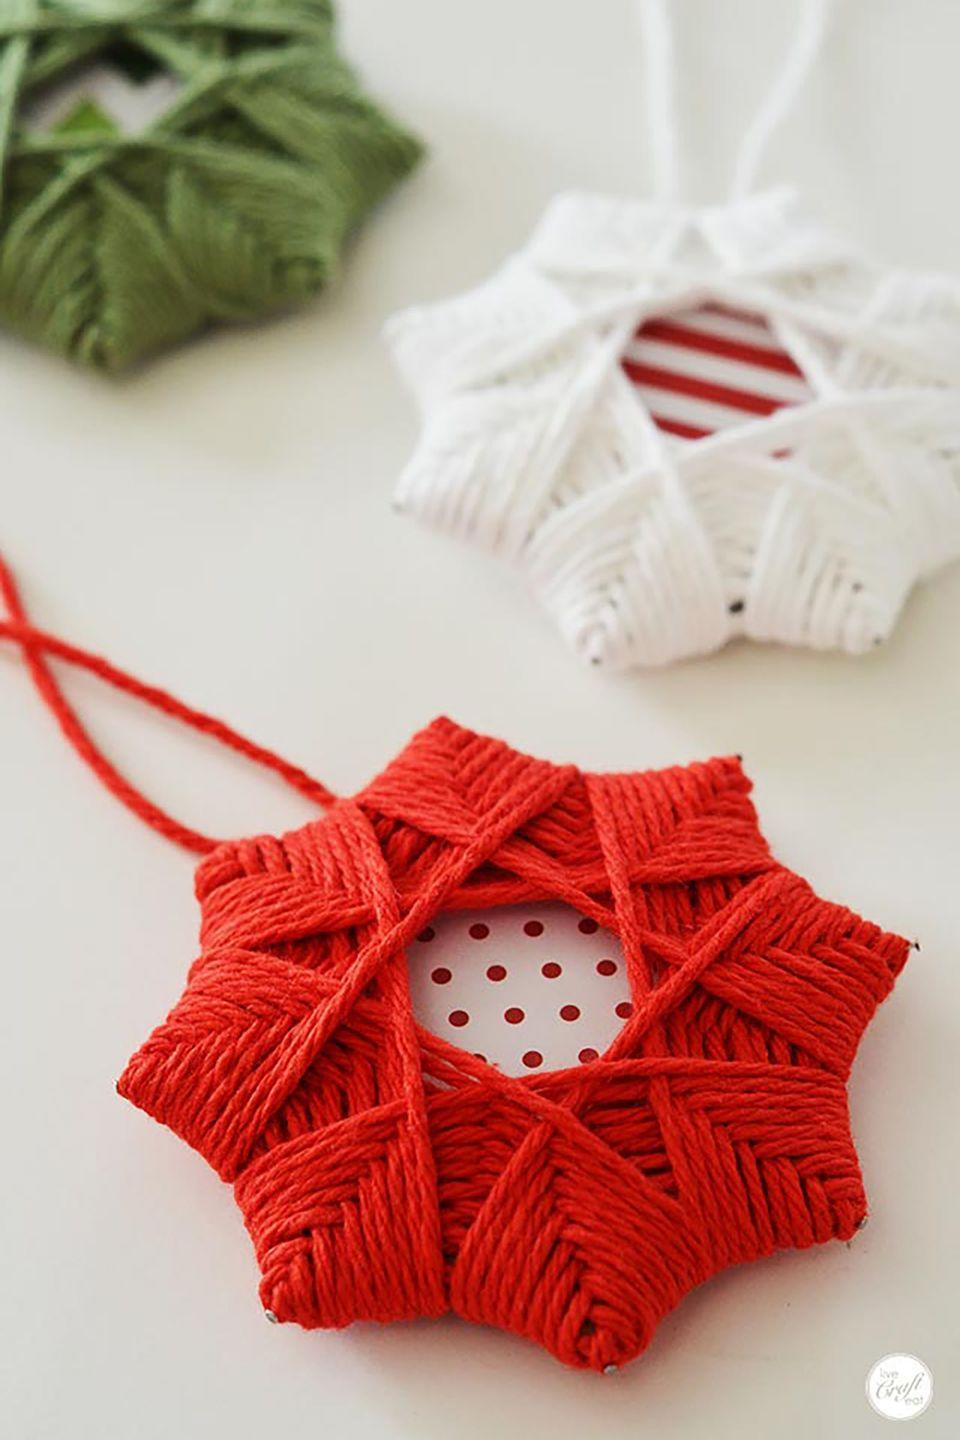 """<p>These cute Christmas star ornaments only require two supplies: festive yarn and pretty cardstock.</p><p><strong>Get the tutorial at <a href=""""http://www.livecrafteat.com/craft/homemade-christmas-tree-star-ornaments/"""" rel=""""nofollow noopener"""" target=""""_blank"""" data-ylk=""""slk:Live Craft Eat"""" class=""""link rapid-noclick-resp"""">Live Craft Eat</a>. </strong><br></p><p><a class=""""link rapid-noclick-resp"""" href=""""https://www.amazon.com/Lion-Brand-Yarn-761-113-Cotton/dp/B017T97ABG/?tag=syn-yahoo-20&ascsubtag=%5Bartid%7C10050.g.1070%5Bsrc%7Cyahoo-us"""" rel=""""nofollow noopener"""" target=""""_blank"""" data-ylk=""""slk:SHOP RED YARN"""">SHOP RED YARN</a></p>"""